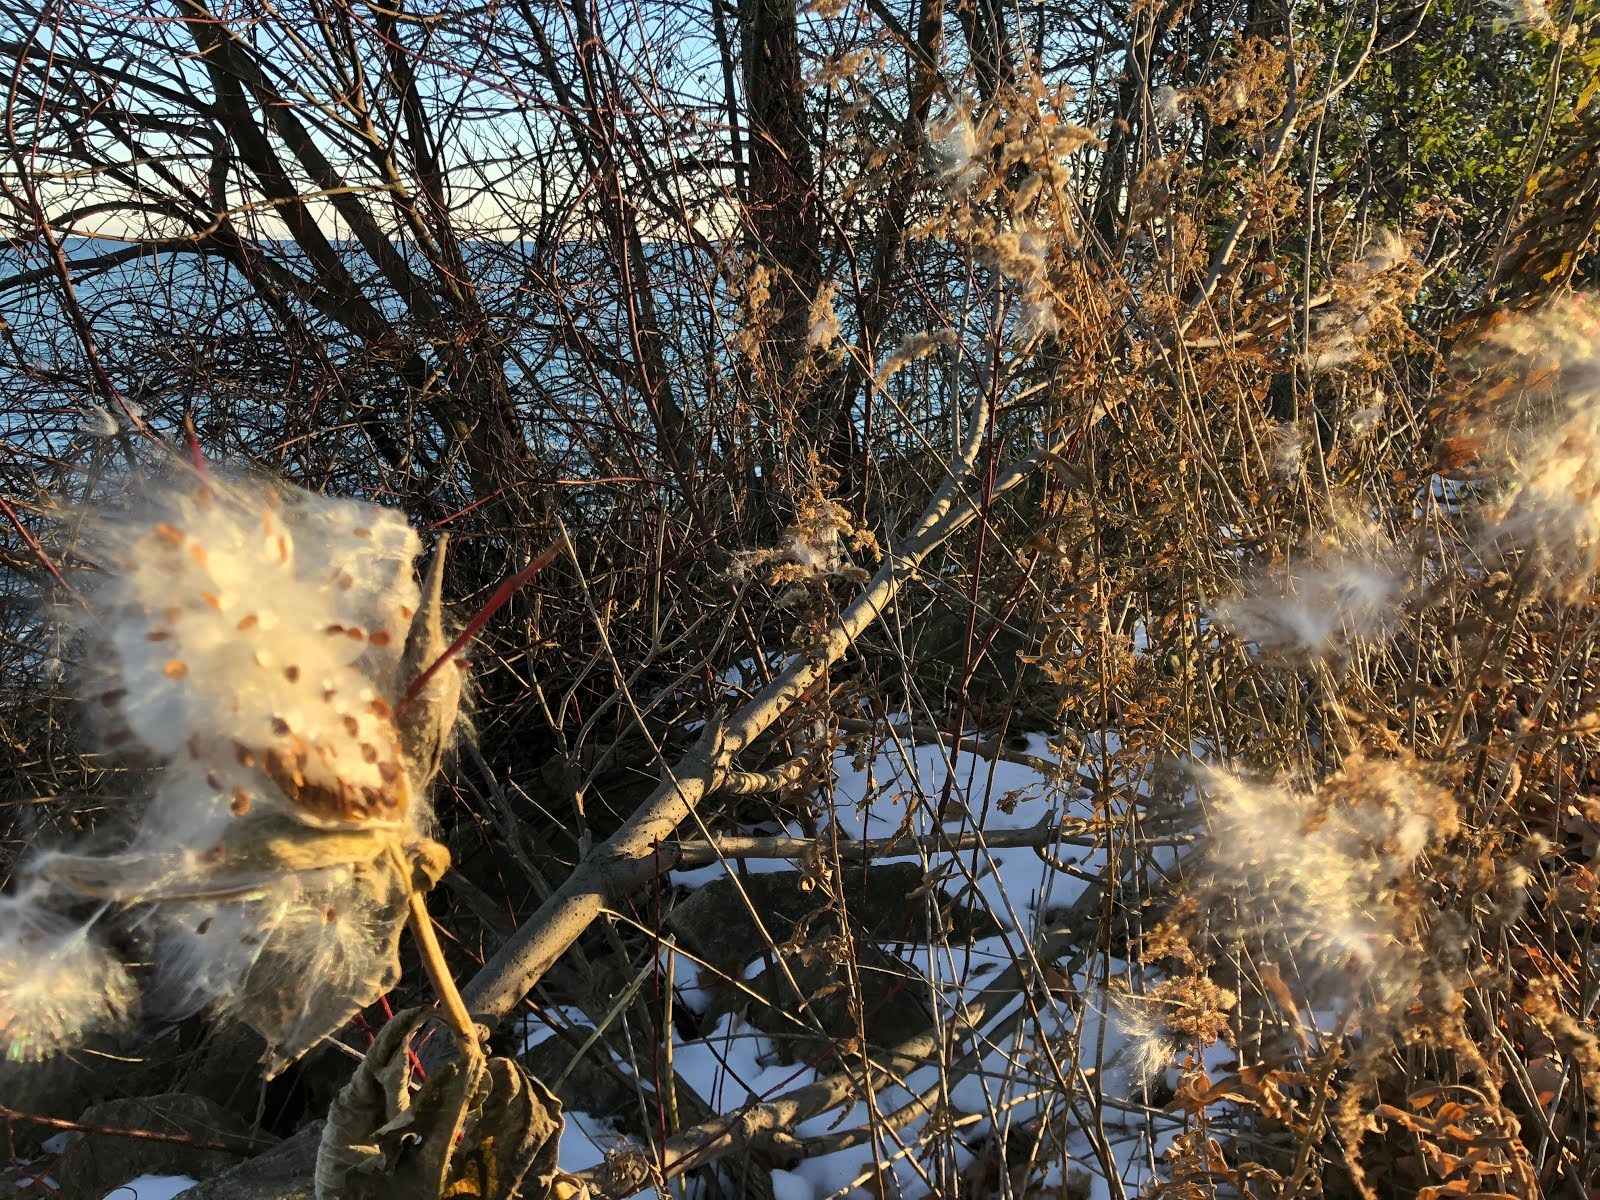 Milkweed along Lake Michigan